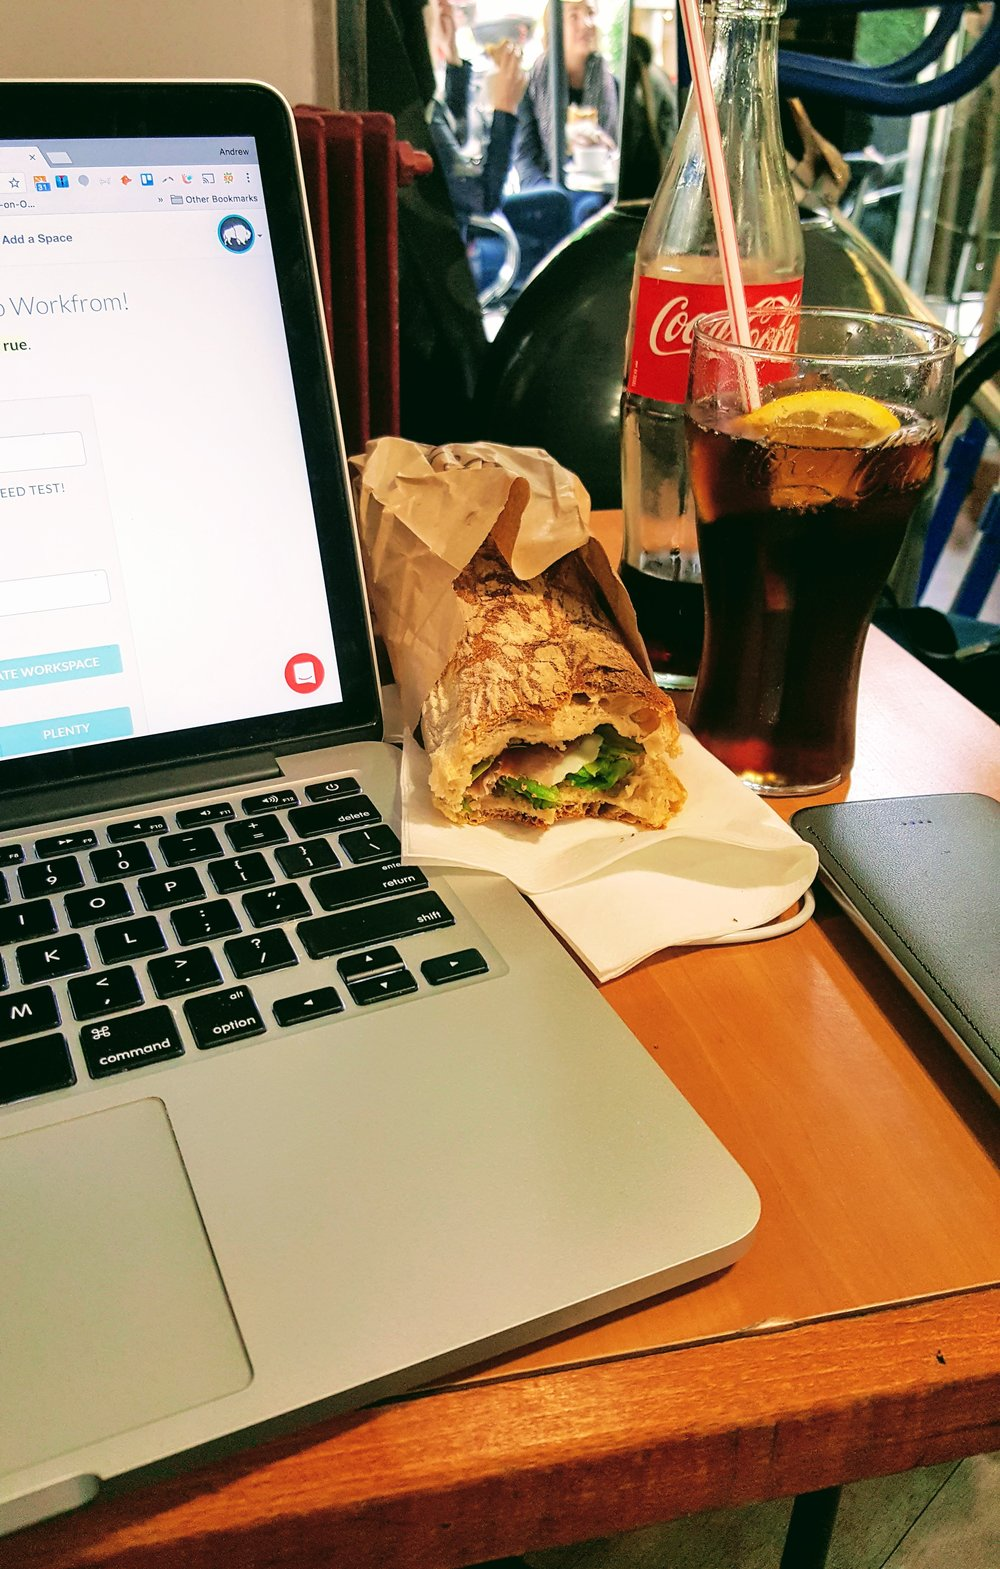 Lunch & work at a local cafe